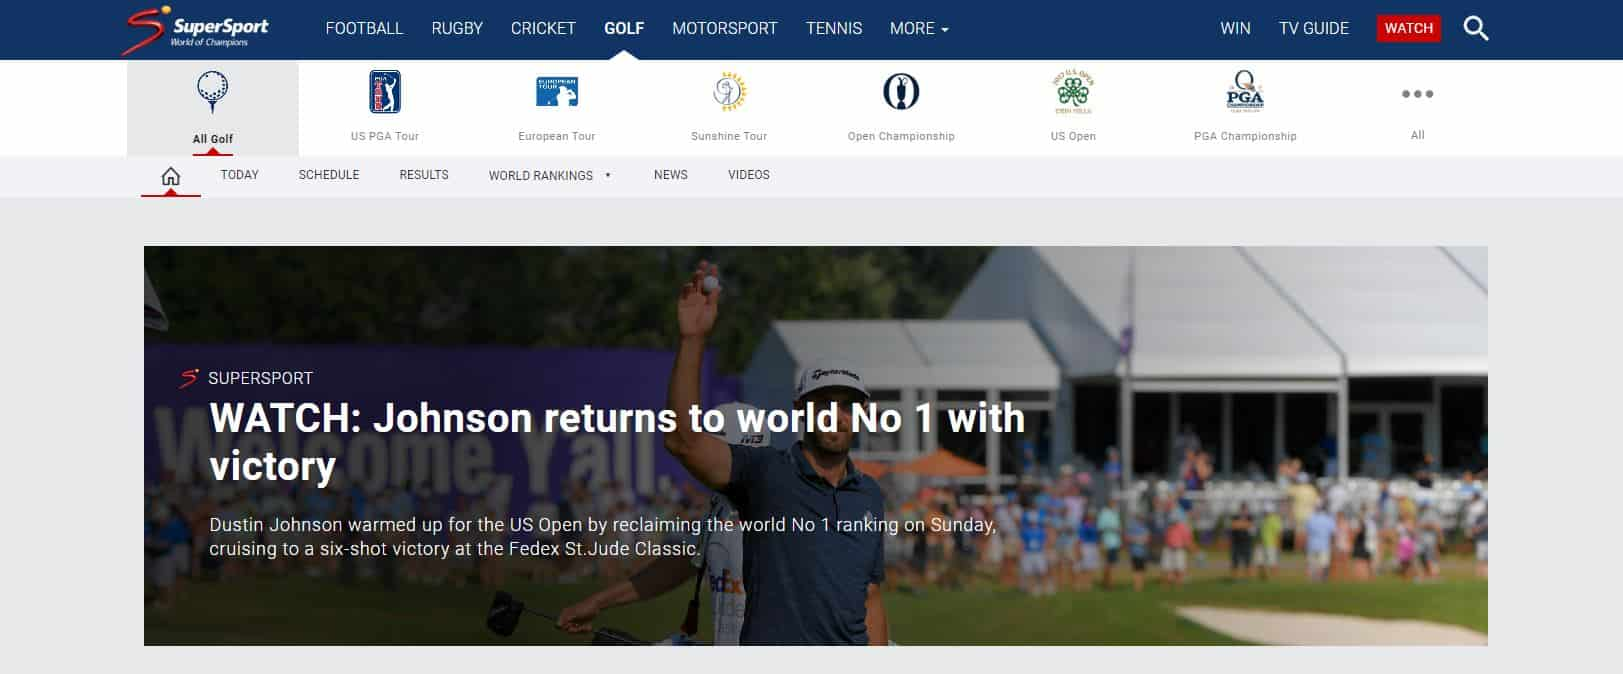 How to Watch US Open Golf Online: Stream Live from Anywhere